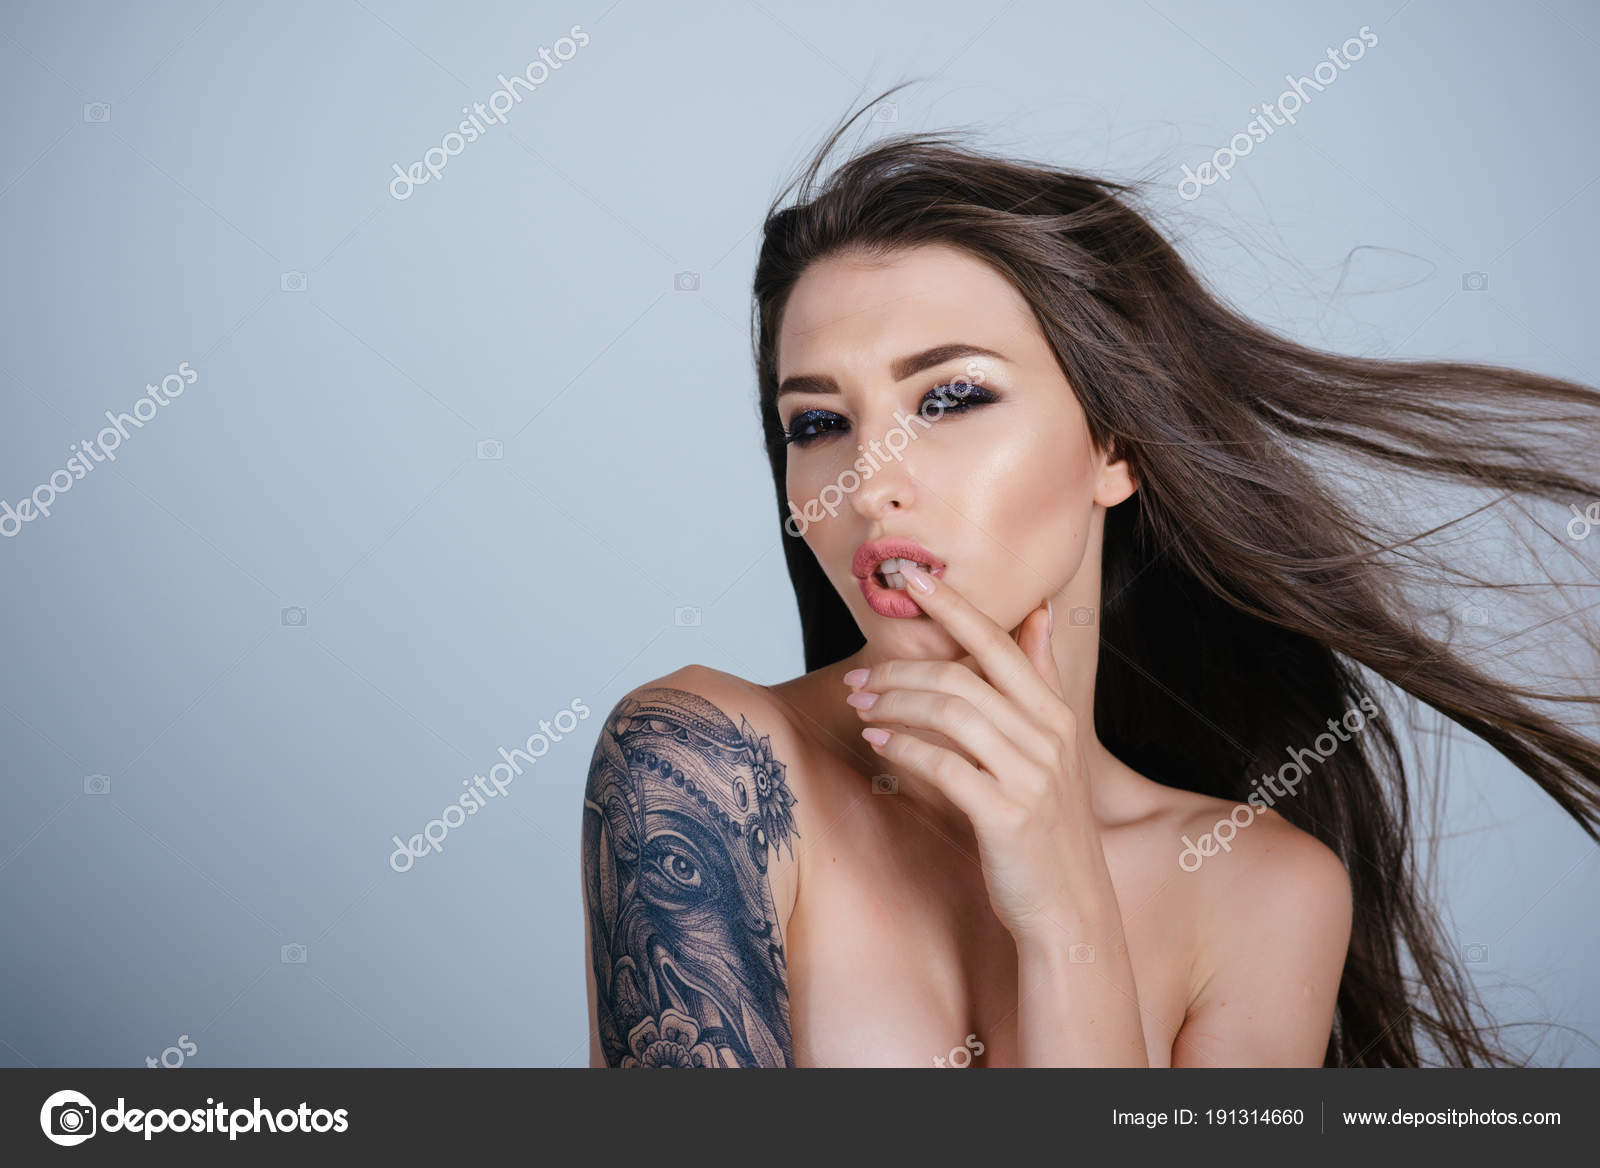 Chinese Symbol Shoulder Tattoo Tattoo Woman Painting Shoulder Tattoo Art Design Painting Draw Culture Stock Photo C Tverdohlib Com 191314660